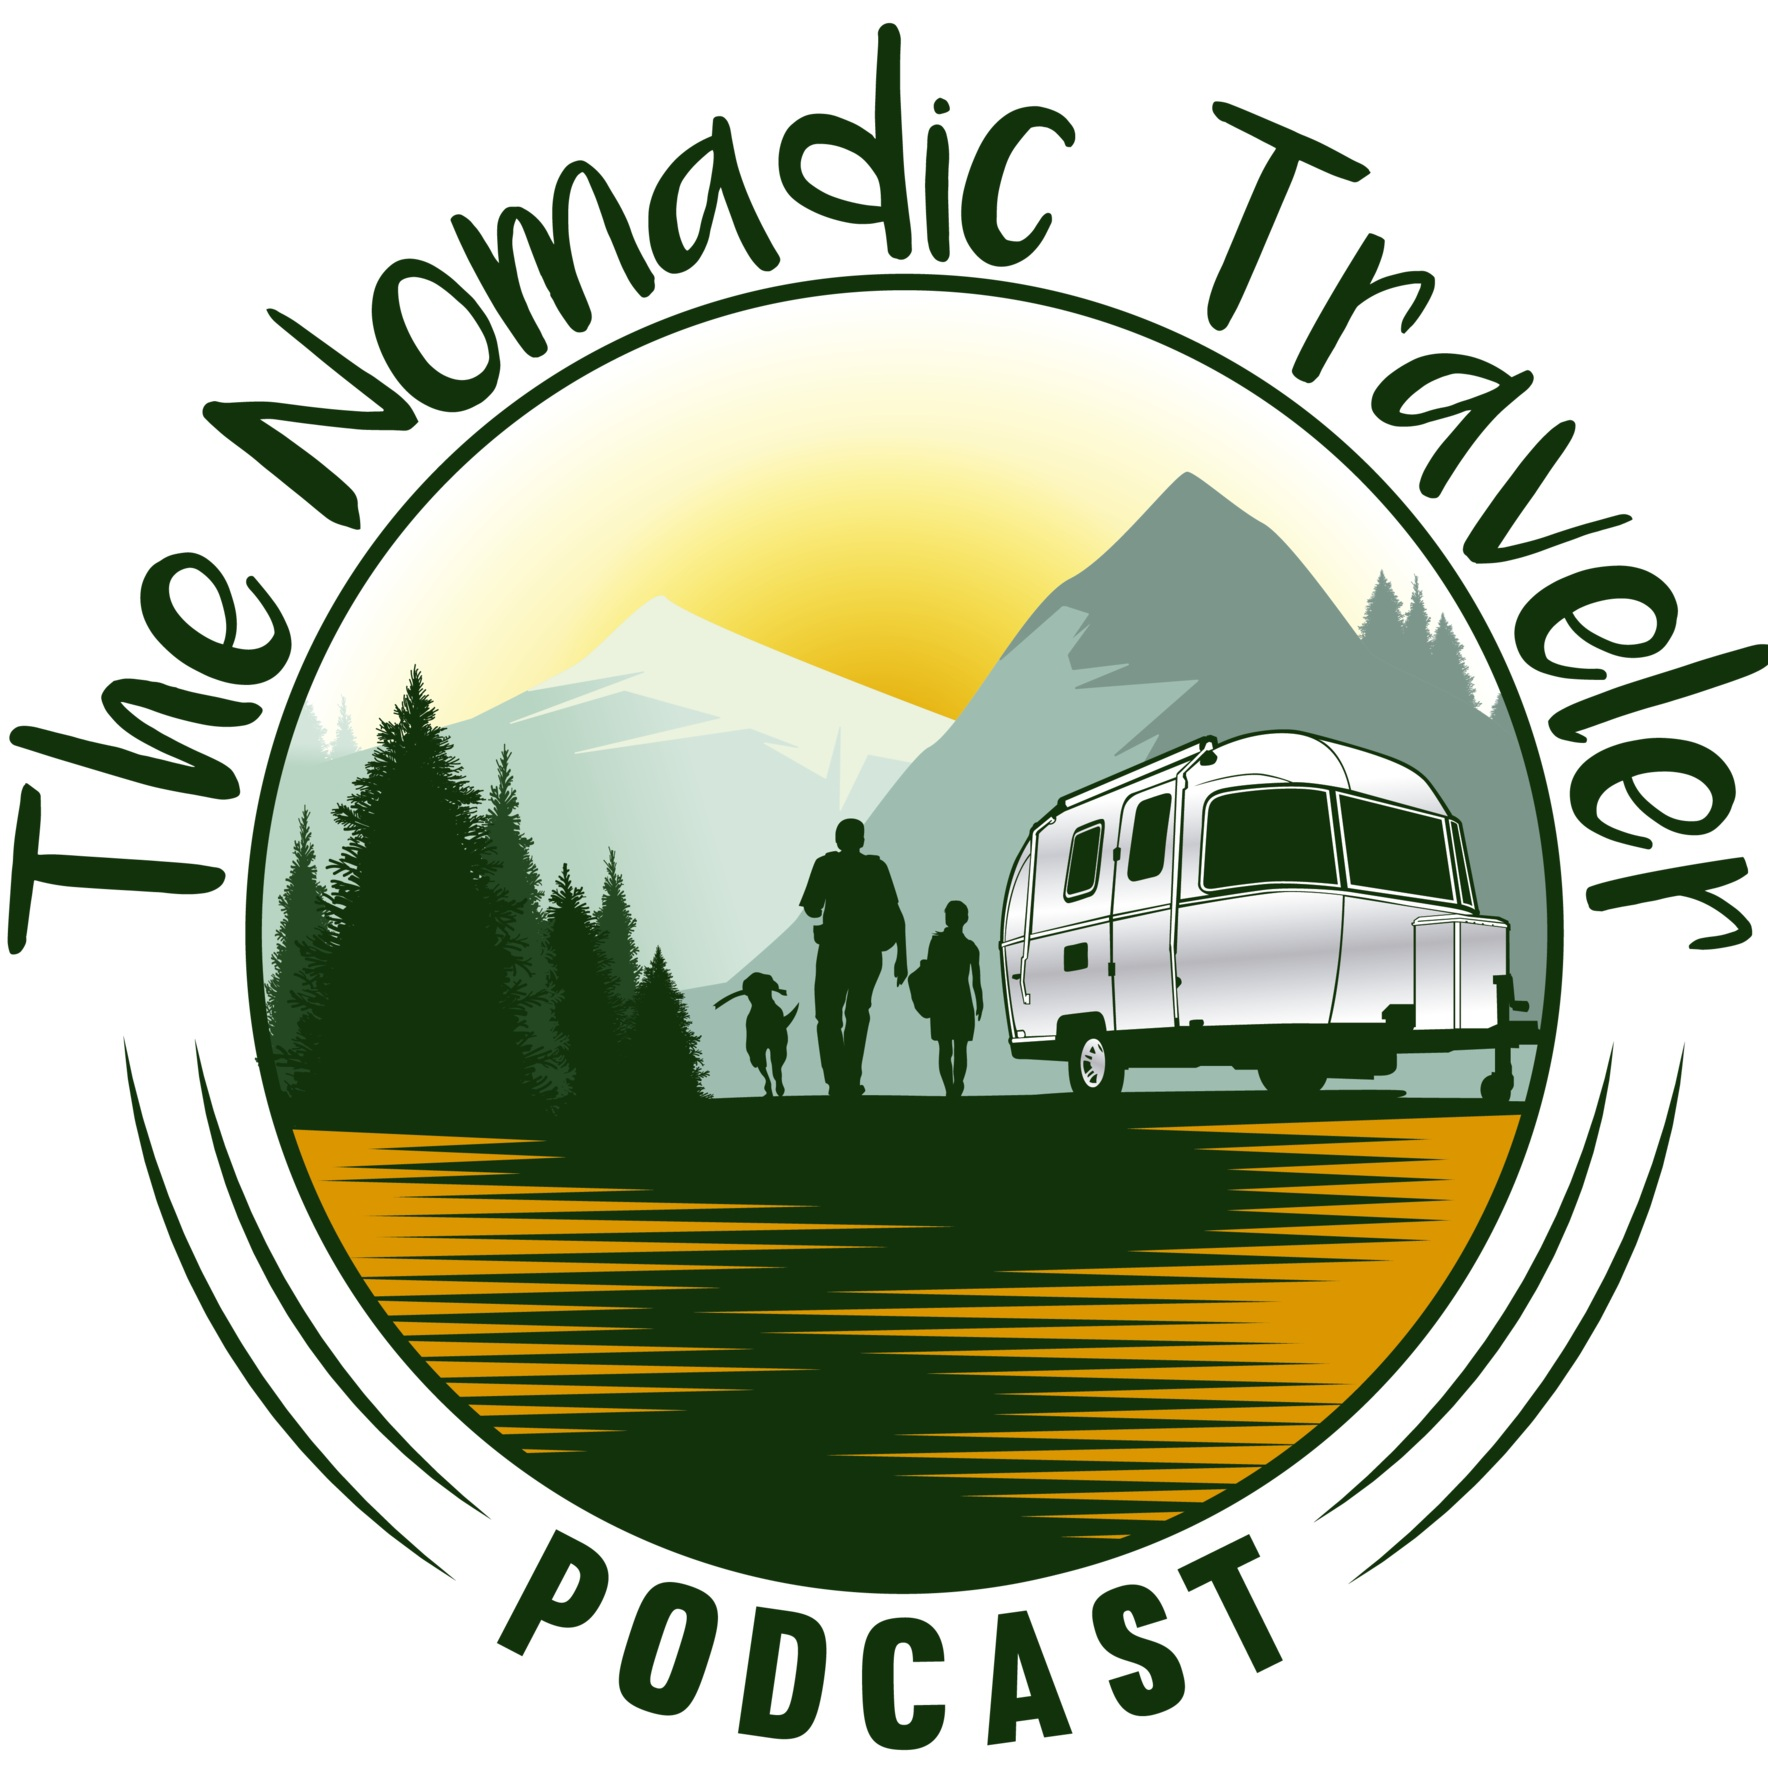 Nicole and Jason asked me to be on their show to talk about solo travel. We talked so long, the show had to be broken up into two parts!